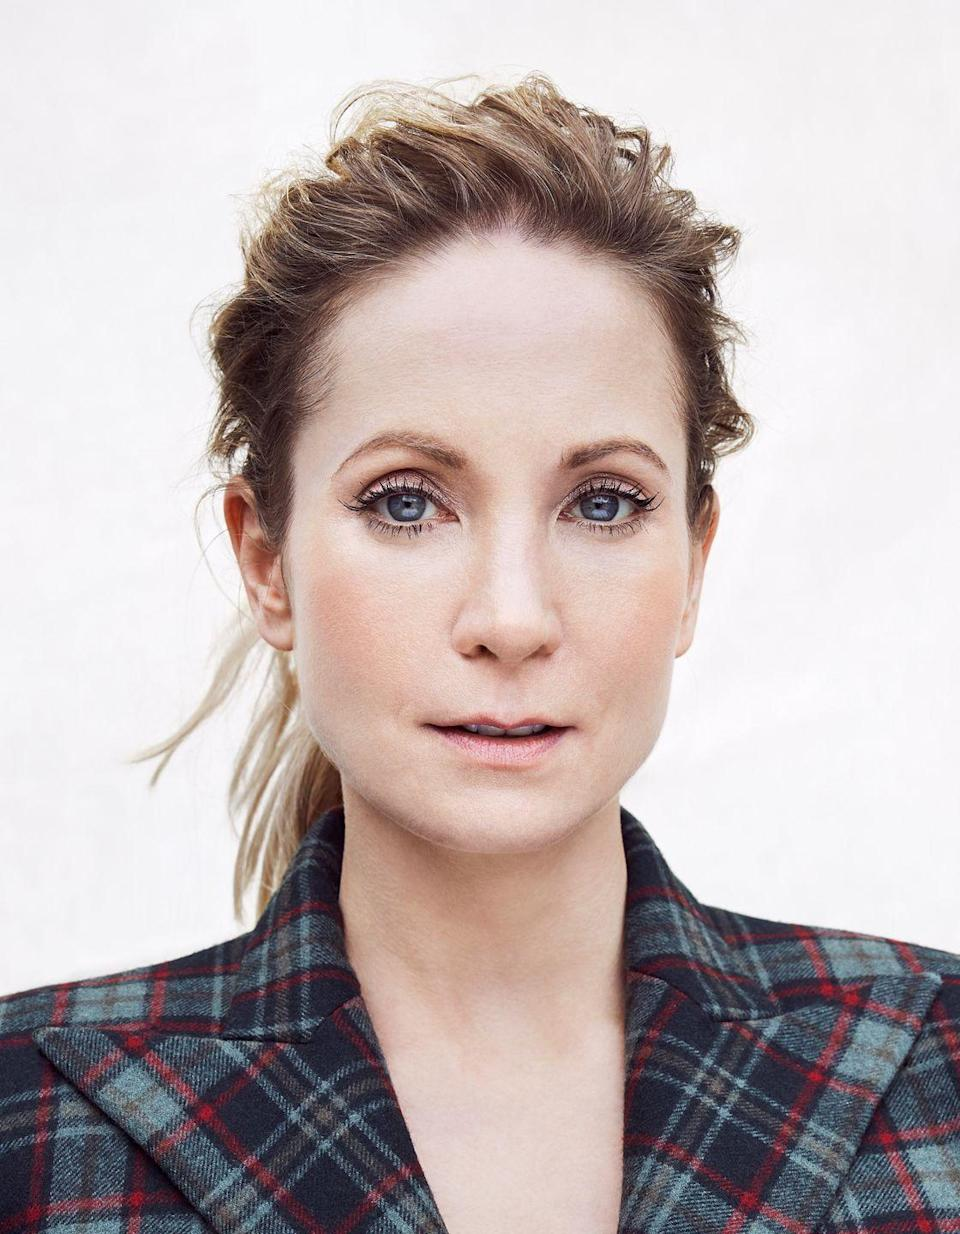 """<p>Joanne Froggatt, of Downton Abbey fame, takes on the role of Angela Black - 'a suburban housewife whose seemingly perfect life isn't all it appears to be'.</p><p><a class=""""link rapid-noclick-resp"""" href=""""https://www.itv.com/hub/angela-black/2a6722"""" rel=""""nofollow noopener"""" target=""""_blank"""" data-ylk=""""slk:WATCH NOW"""">WATCH NOW</a></p>"""